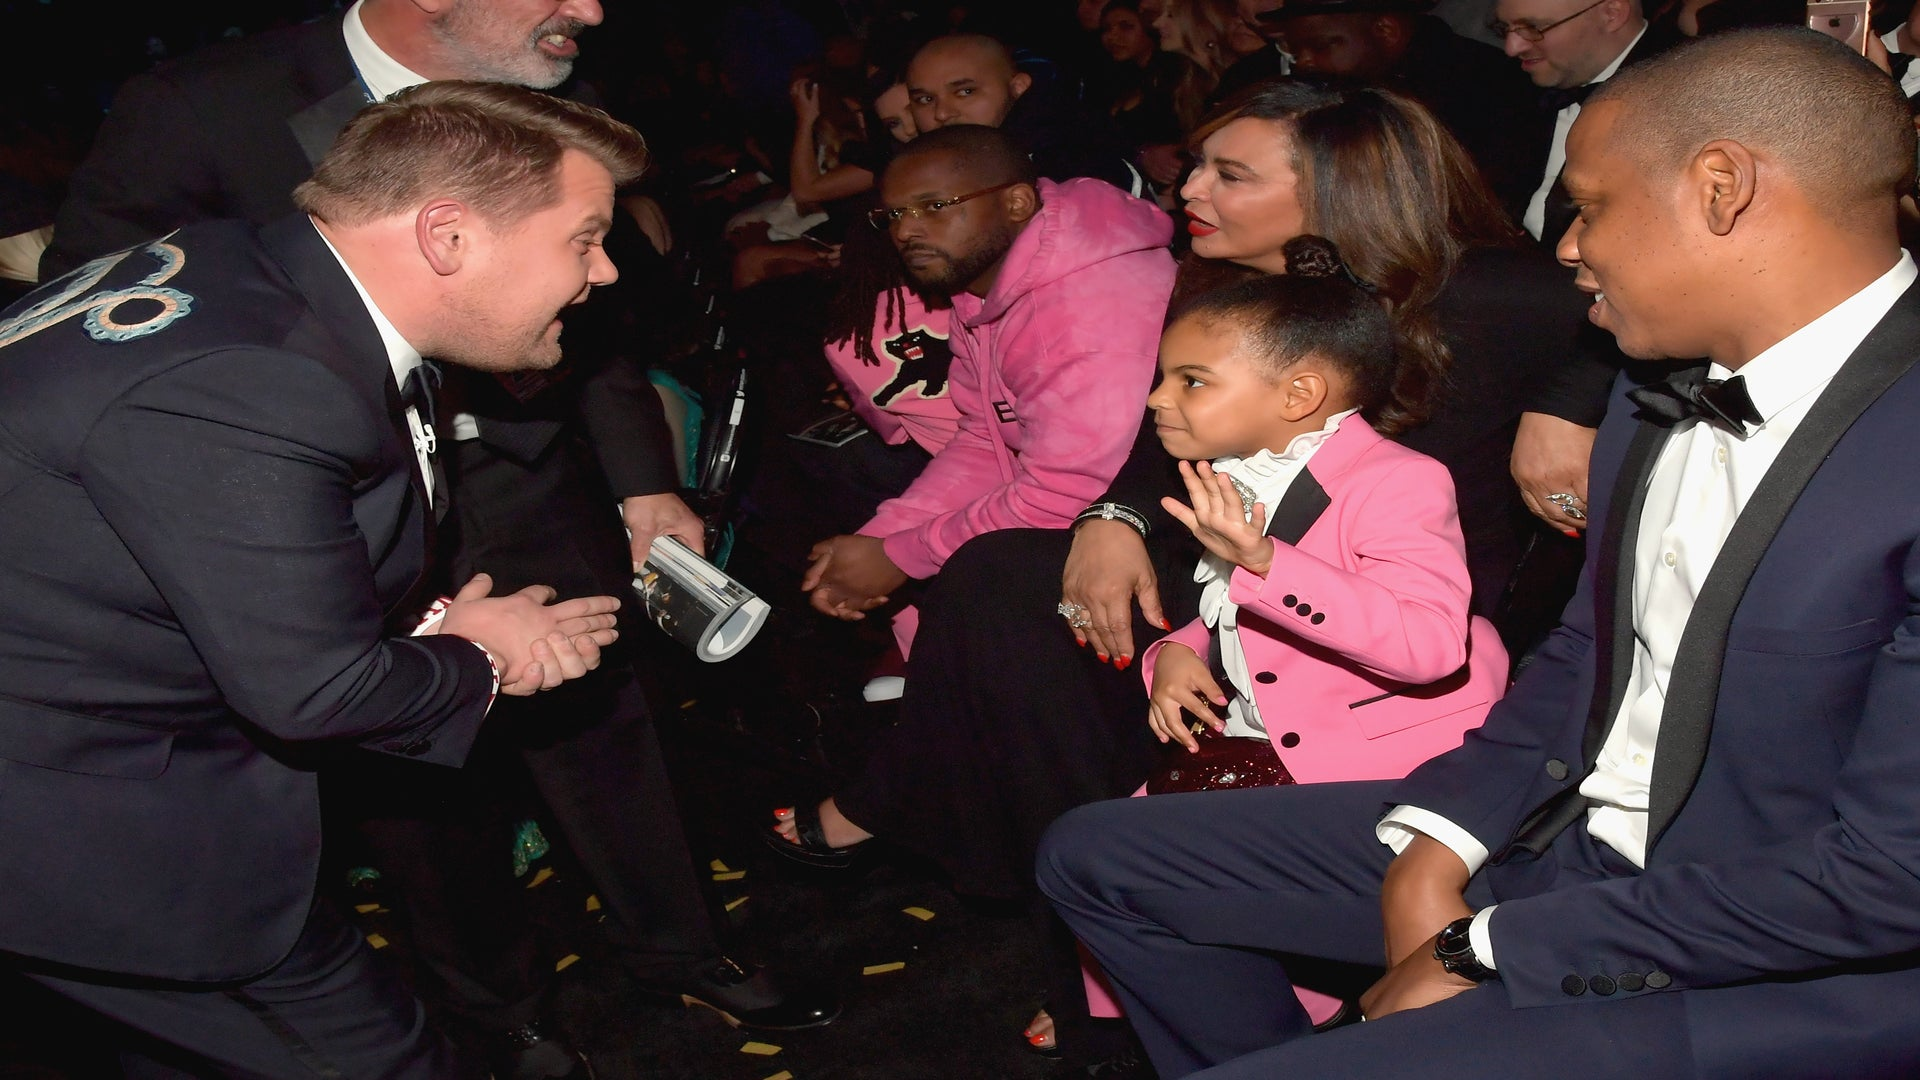 Blue Ivy Carter Joins James Corden's Impromptu Singalong At The Grammys